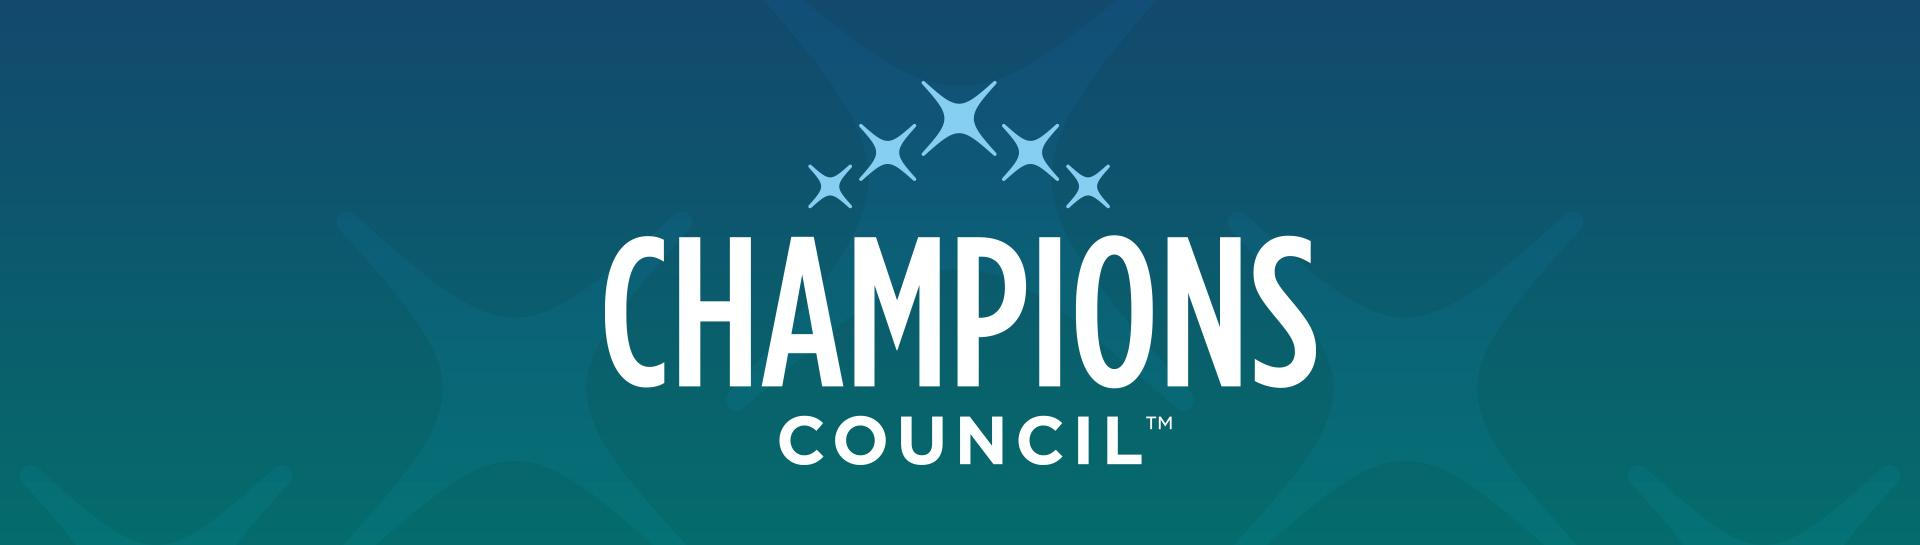 Champions Council Banner_1920